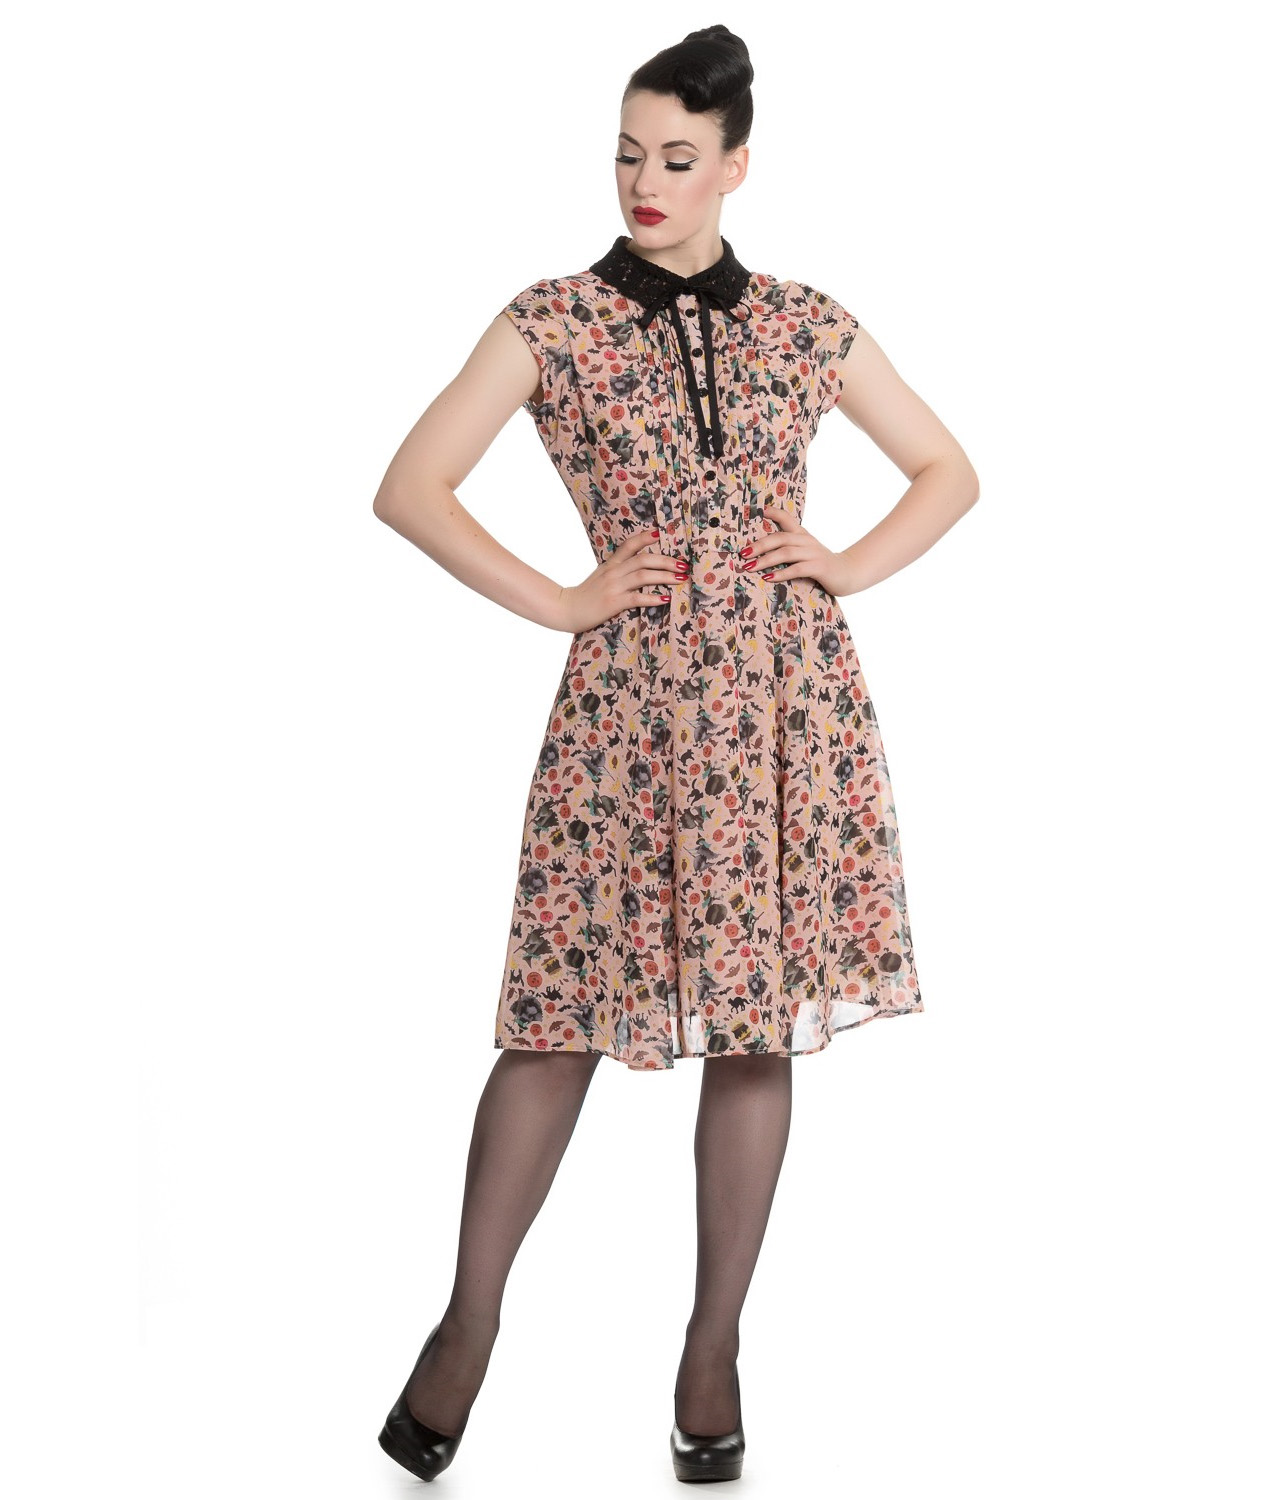 Hell-Bunny-Gothic-40s-50s-Beige-Dress-ZELDA-Witchy-Halloween-All-Sizes thumbnail 23